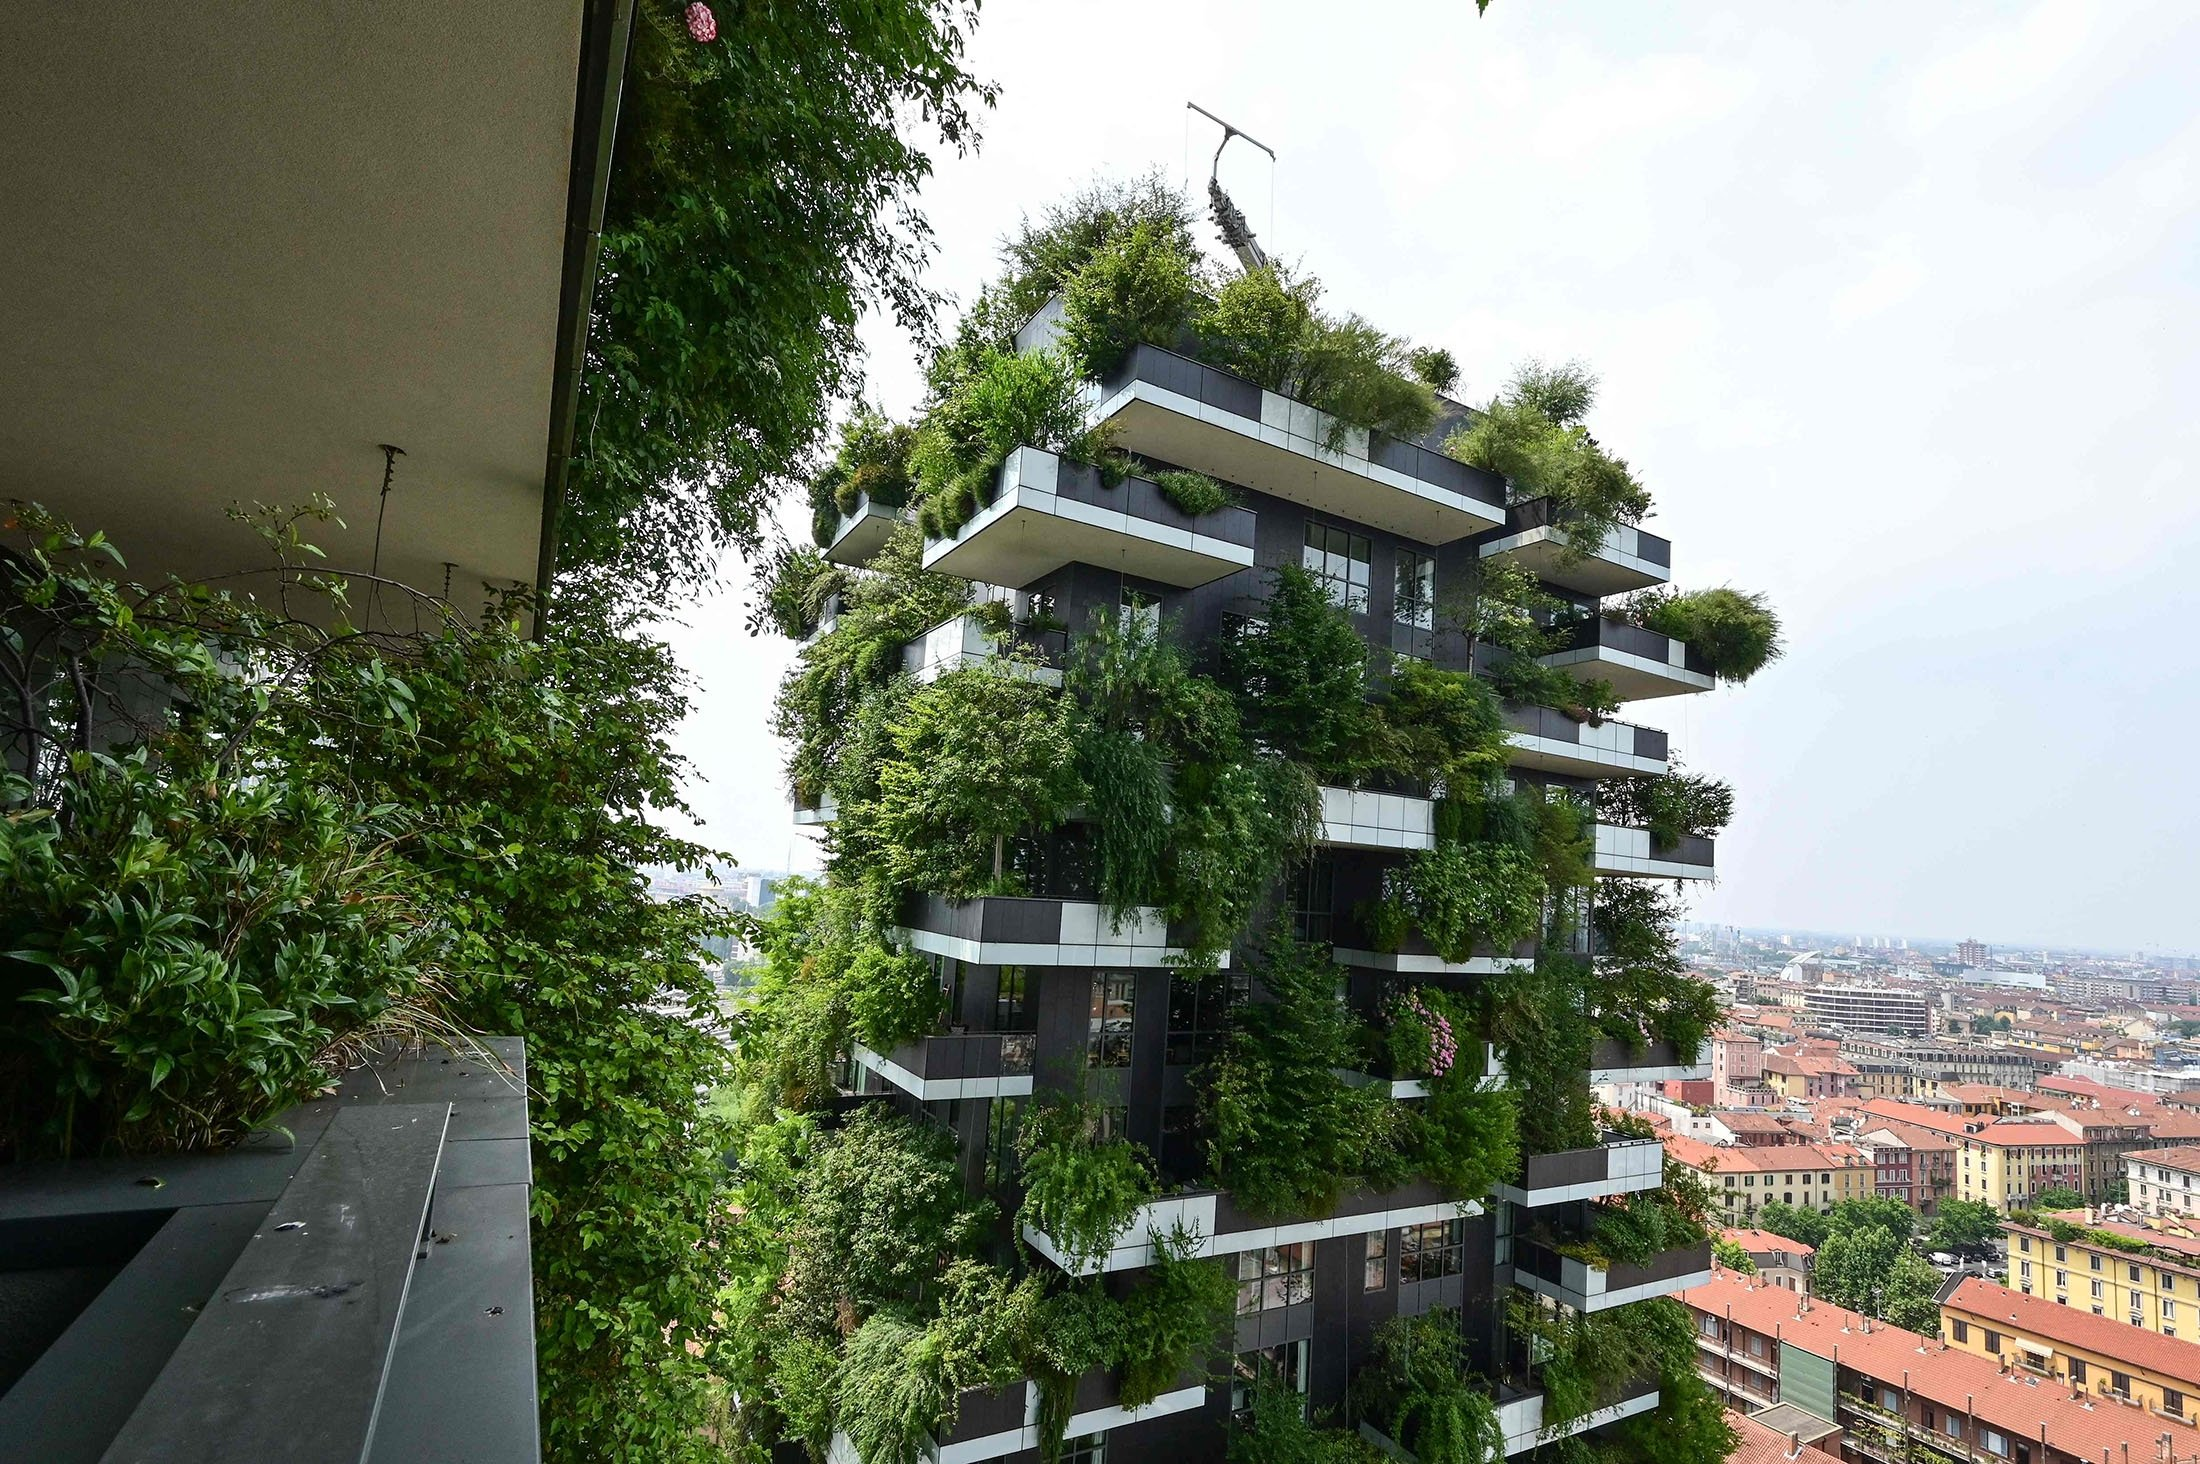 A view from a balcony of the Vertical Forest high-rise complex (Bosco Verticale), designed by Studio Boperi, can be seen in the modern district of Puerta Nuova in Milan with vegetation in the building, Italy, June 17, 2021. (AFP Photo)